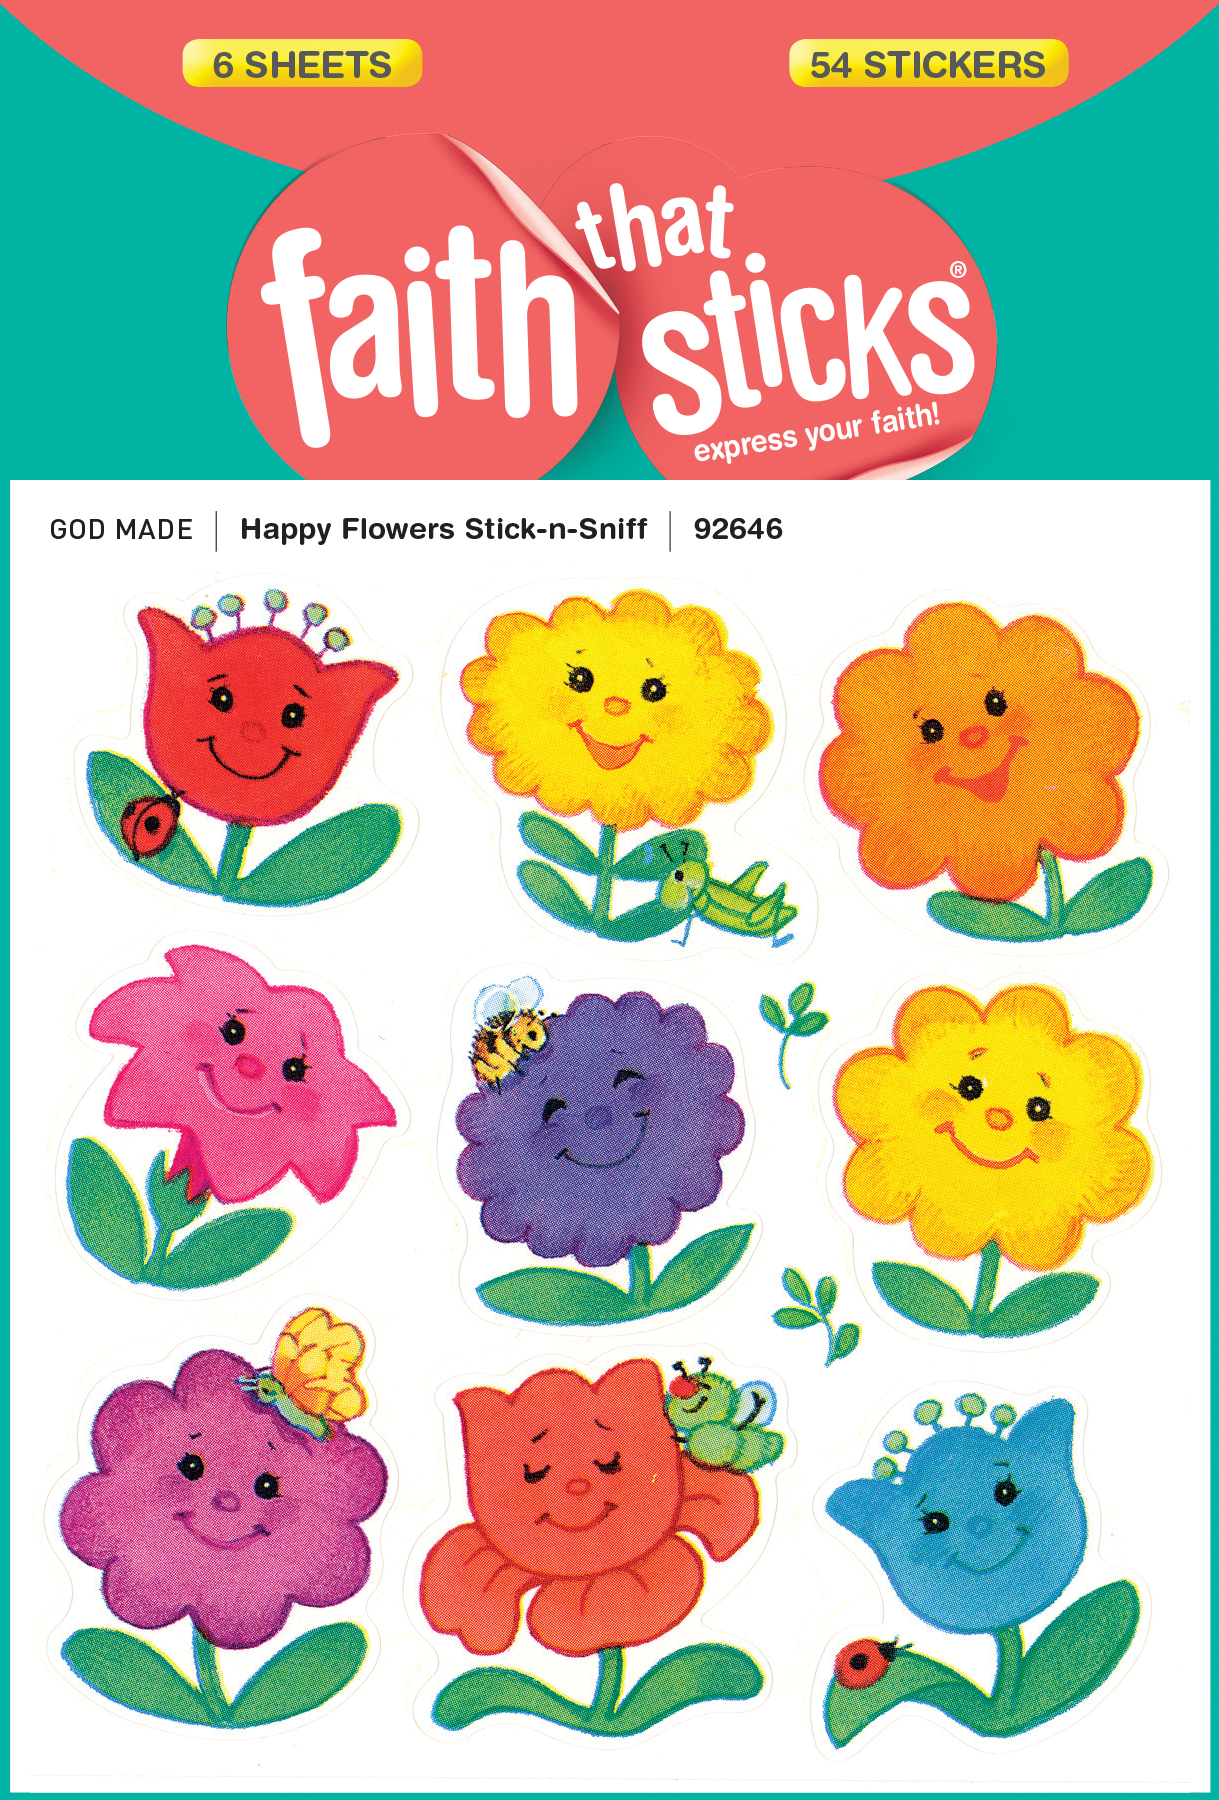 Happy Flowers Stick-n-Sniff